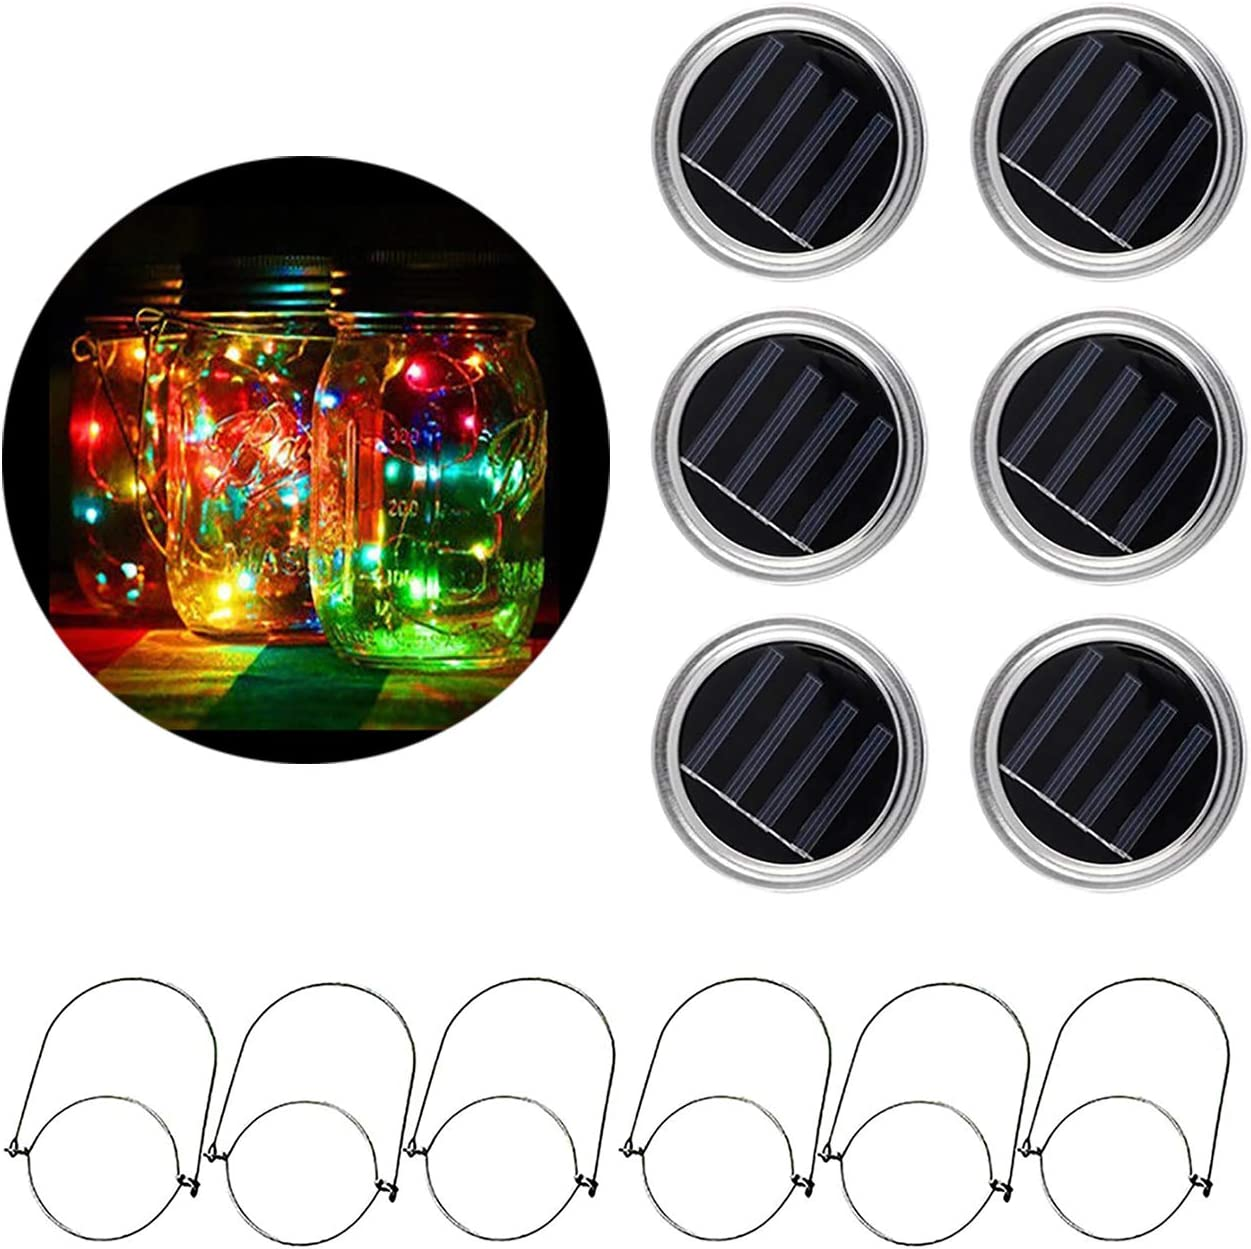 6 Pack MTZRFLL Solar Powered Mason Jar Lids Lights,20 LEDs Fairy Portable Lanterns,6 Stainless Steel Hangers Jars NOT Included ,for Patio,Garden,Christmas,Wedding Multi-Colored